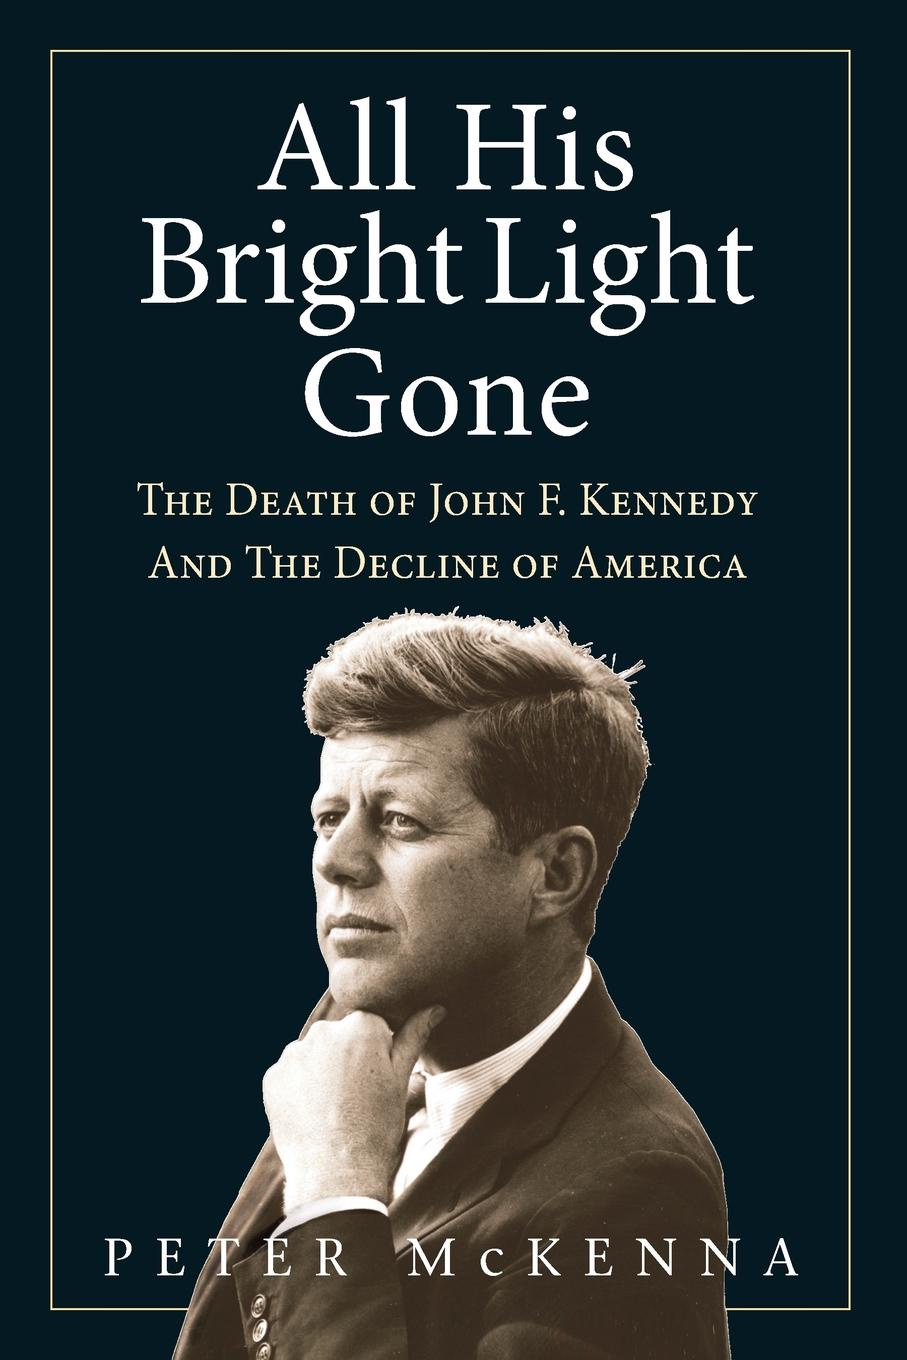 Peter McKenna. ALL HIS BRIGHT LIGHT GONE. The Death of John F. Kennedy and the Decline of America